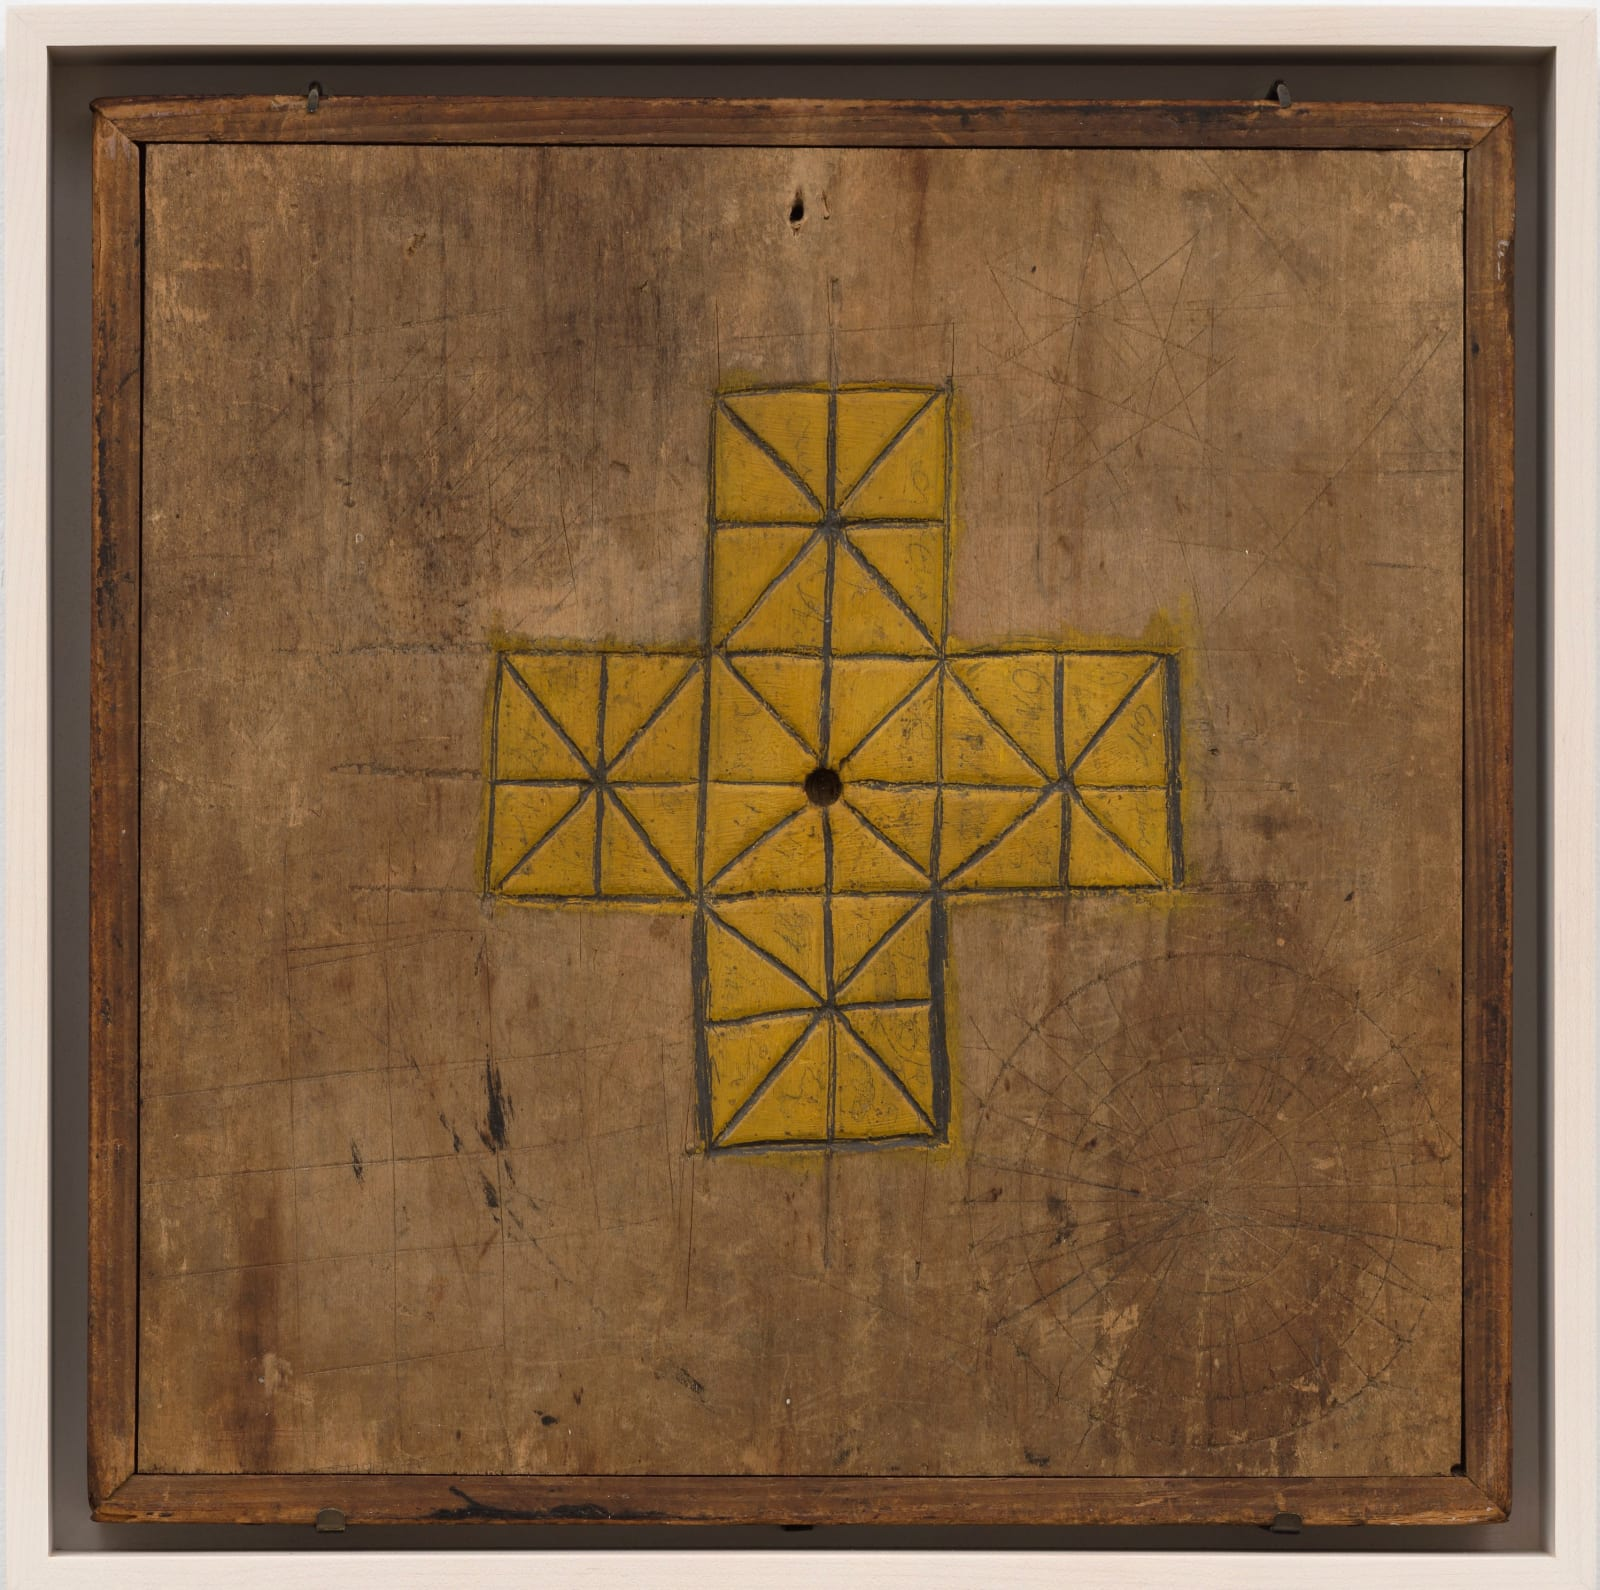 SOLITAIRE GAME BOARD, LATE 19TH CENTURY Polychrome on wood 12 3/4 x 12 1/2 in. (AU 307)